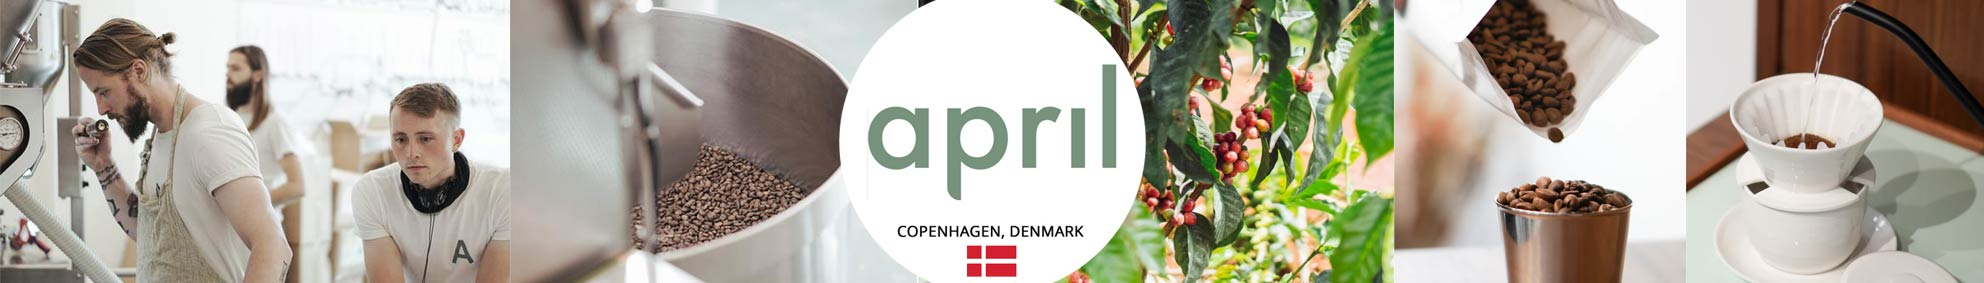 April Coffee Copenhagen Denmark UK Best Coffee Subscription